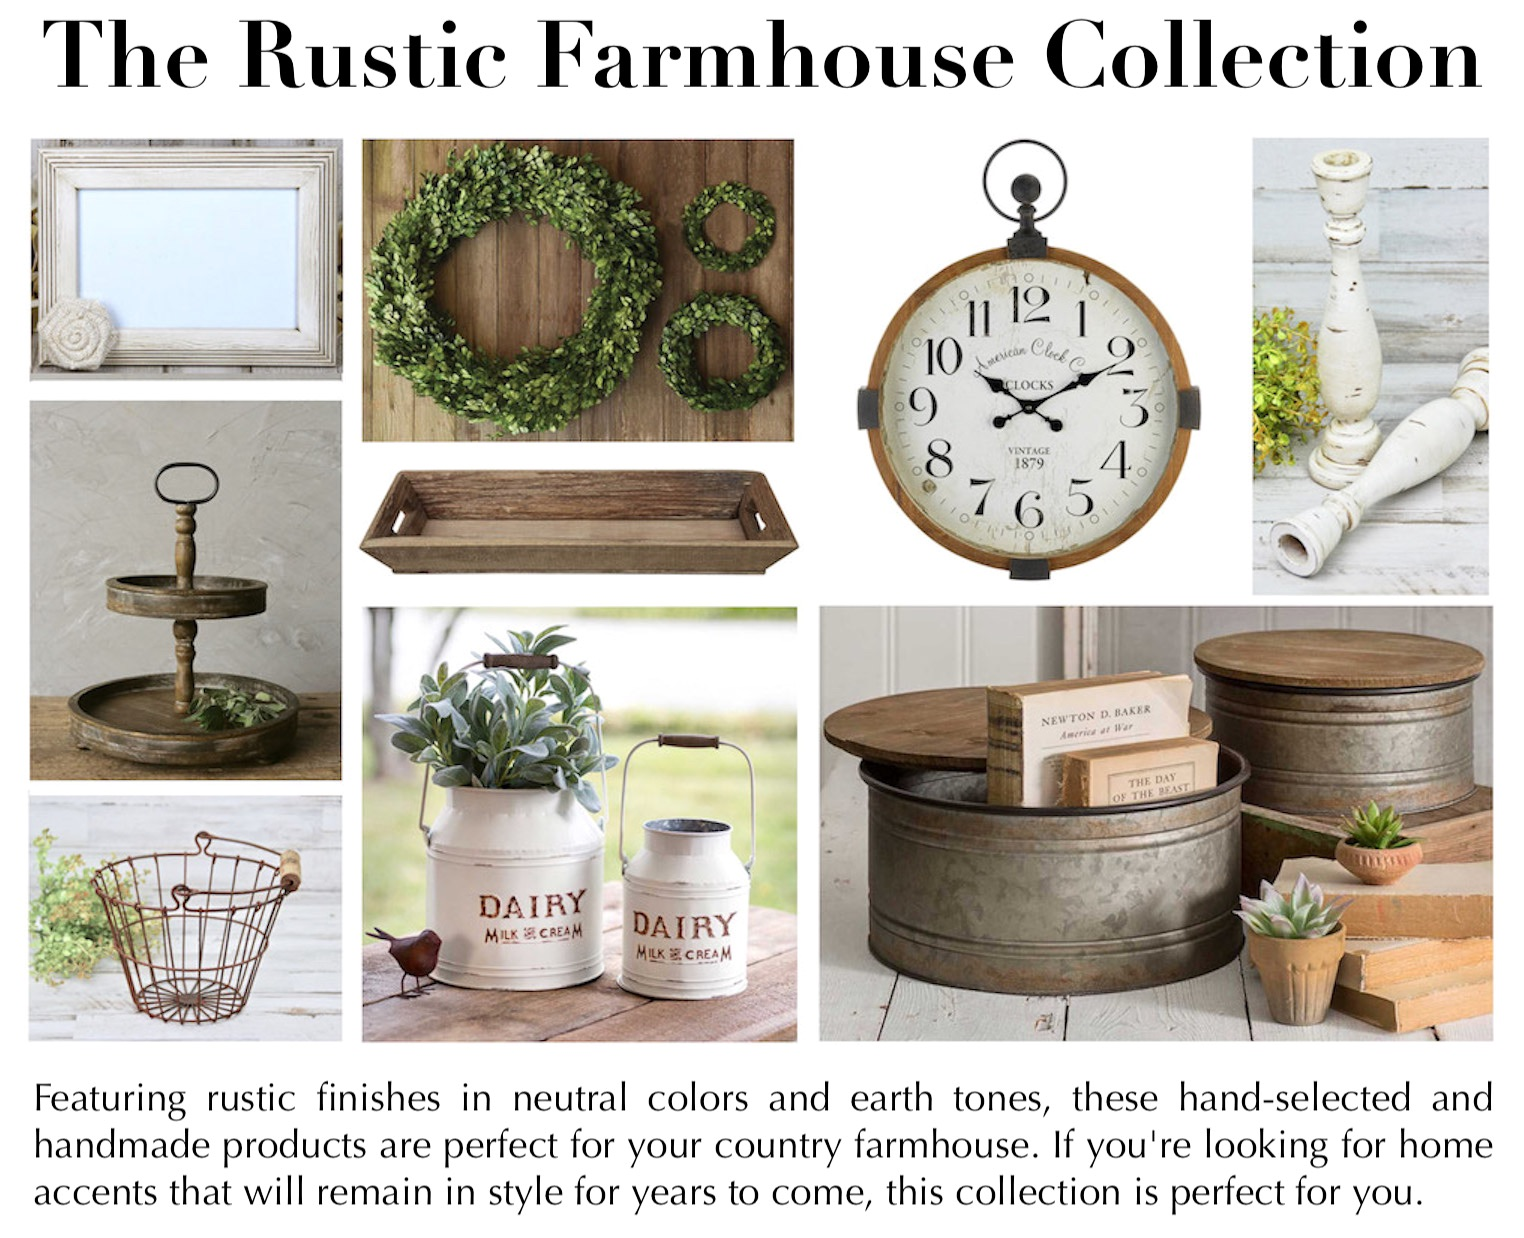 The Rustic Farmhouse Collection